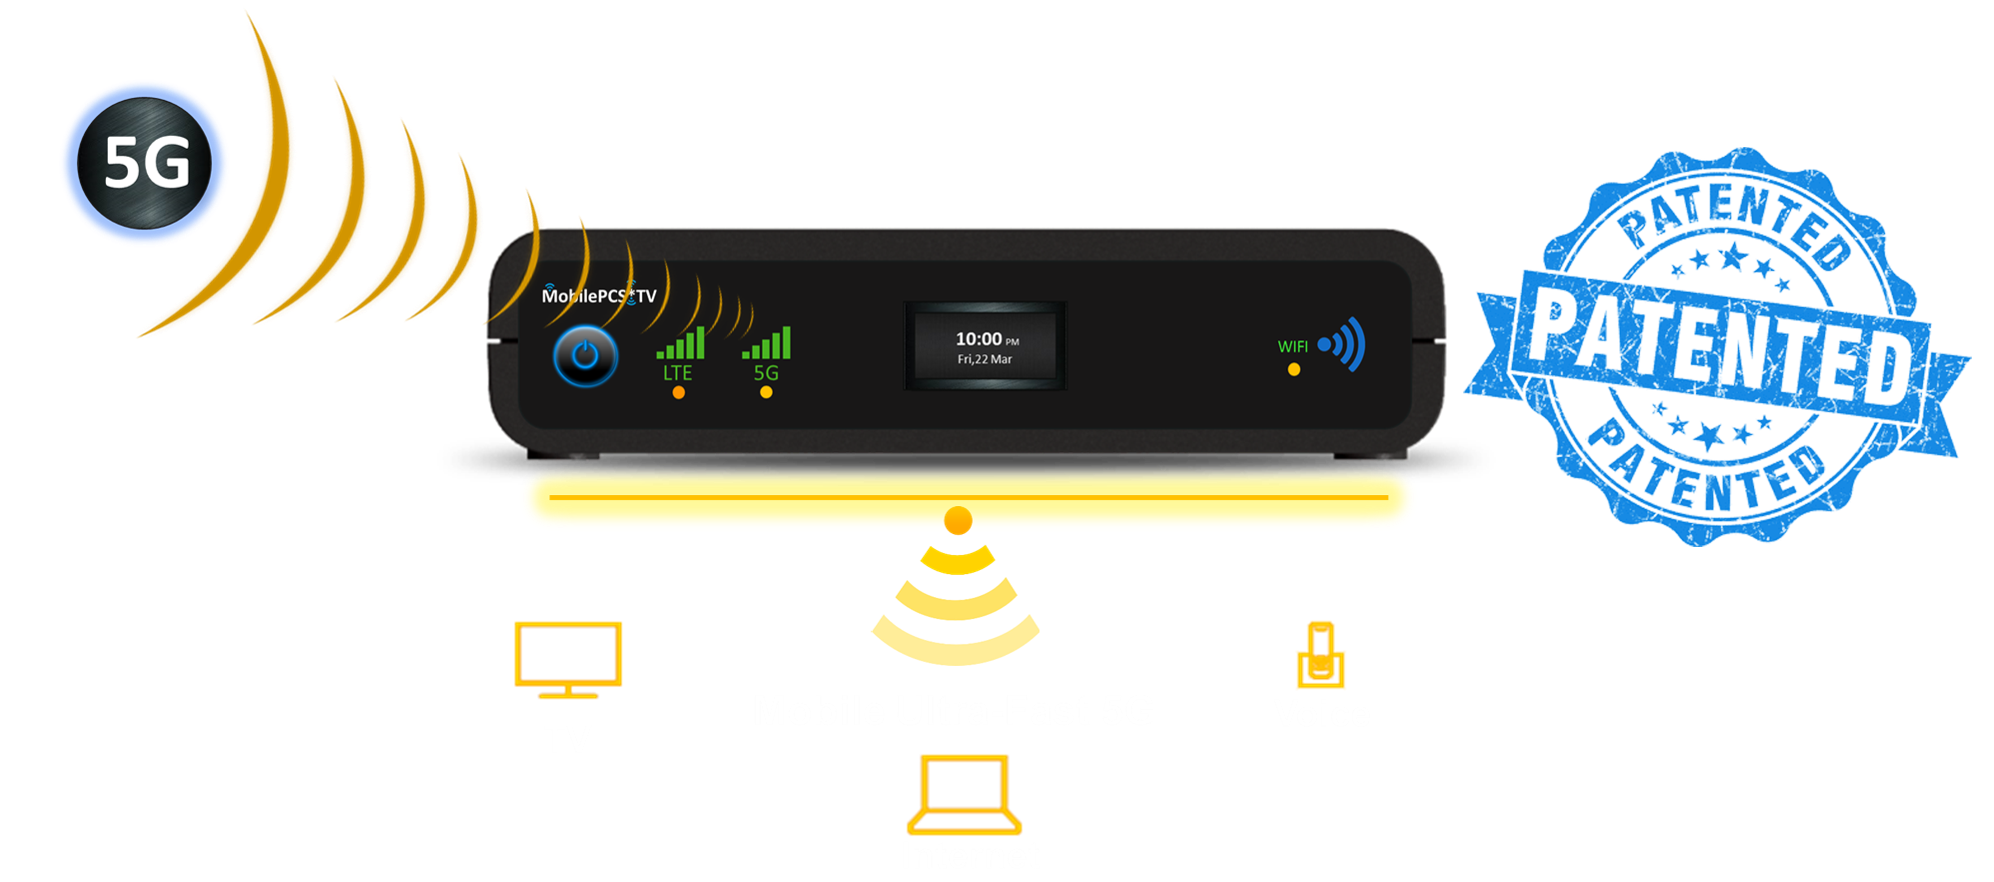 Set Top Box Built On 5G Network